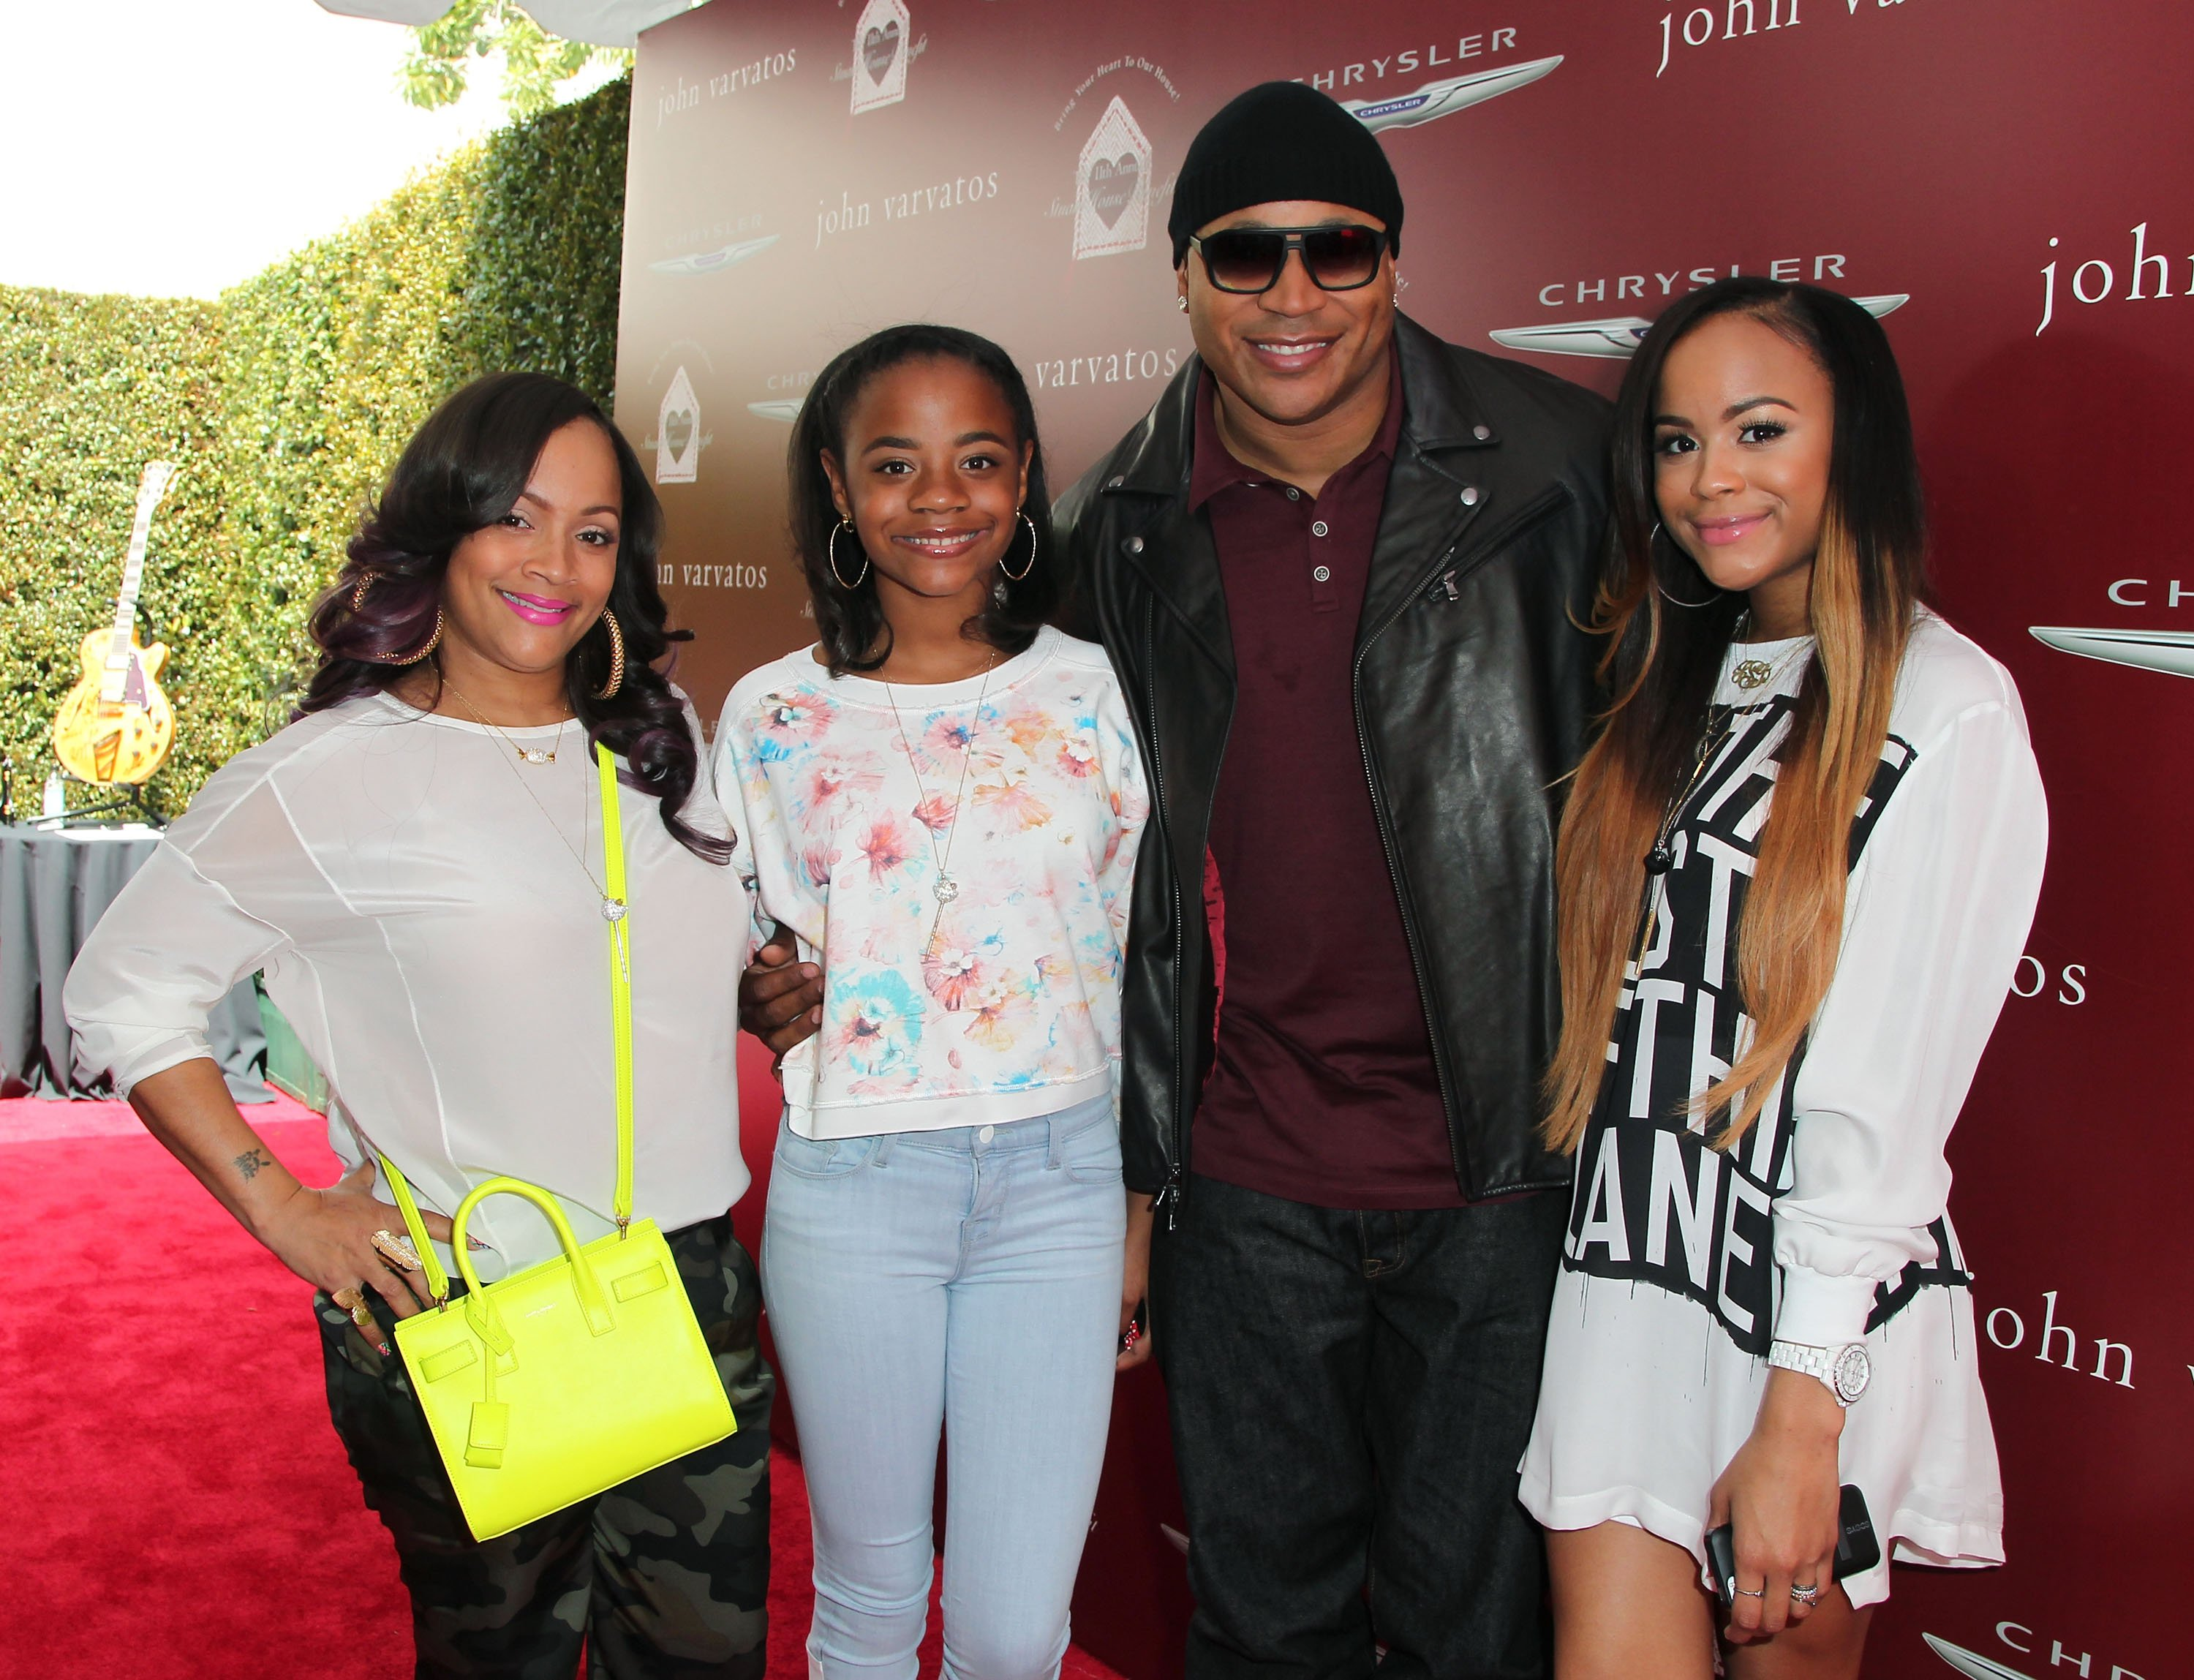 LL Cool J mit seiner Familie | Quelle: Getty Images